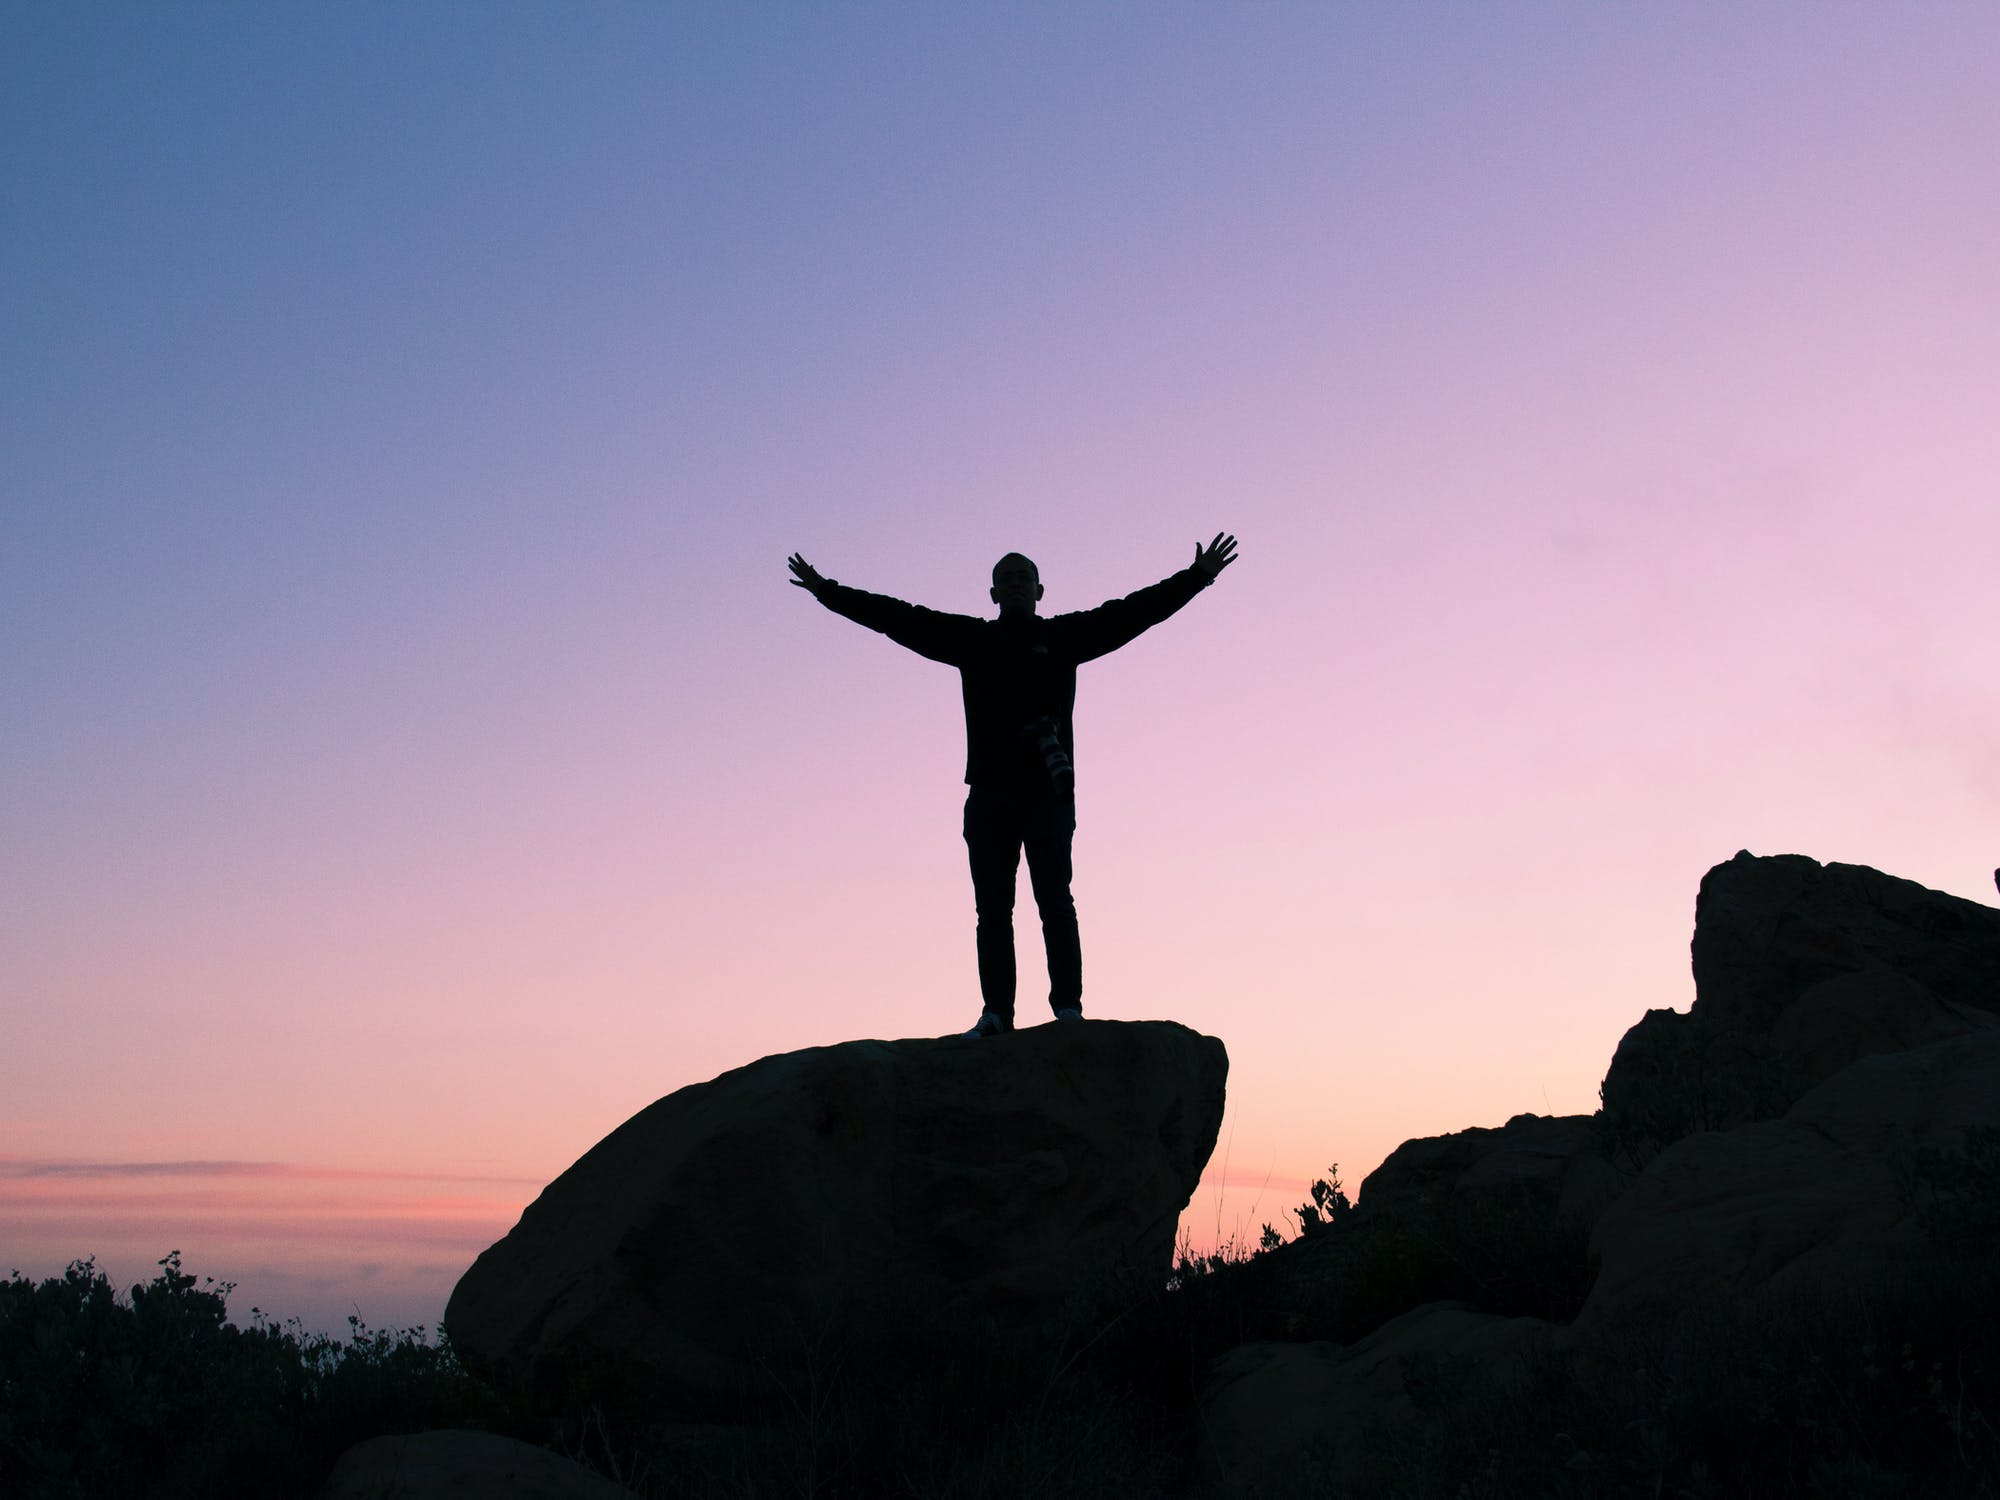 A silhouette of a person standing on a rock with their arms outstretched.